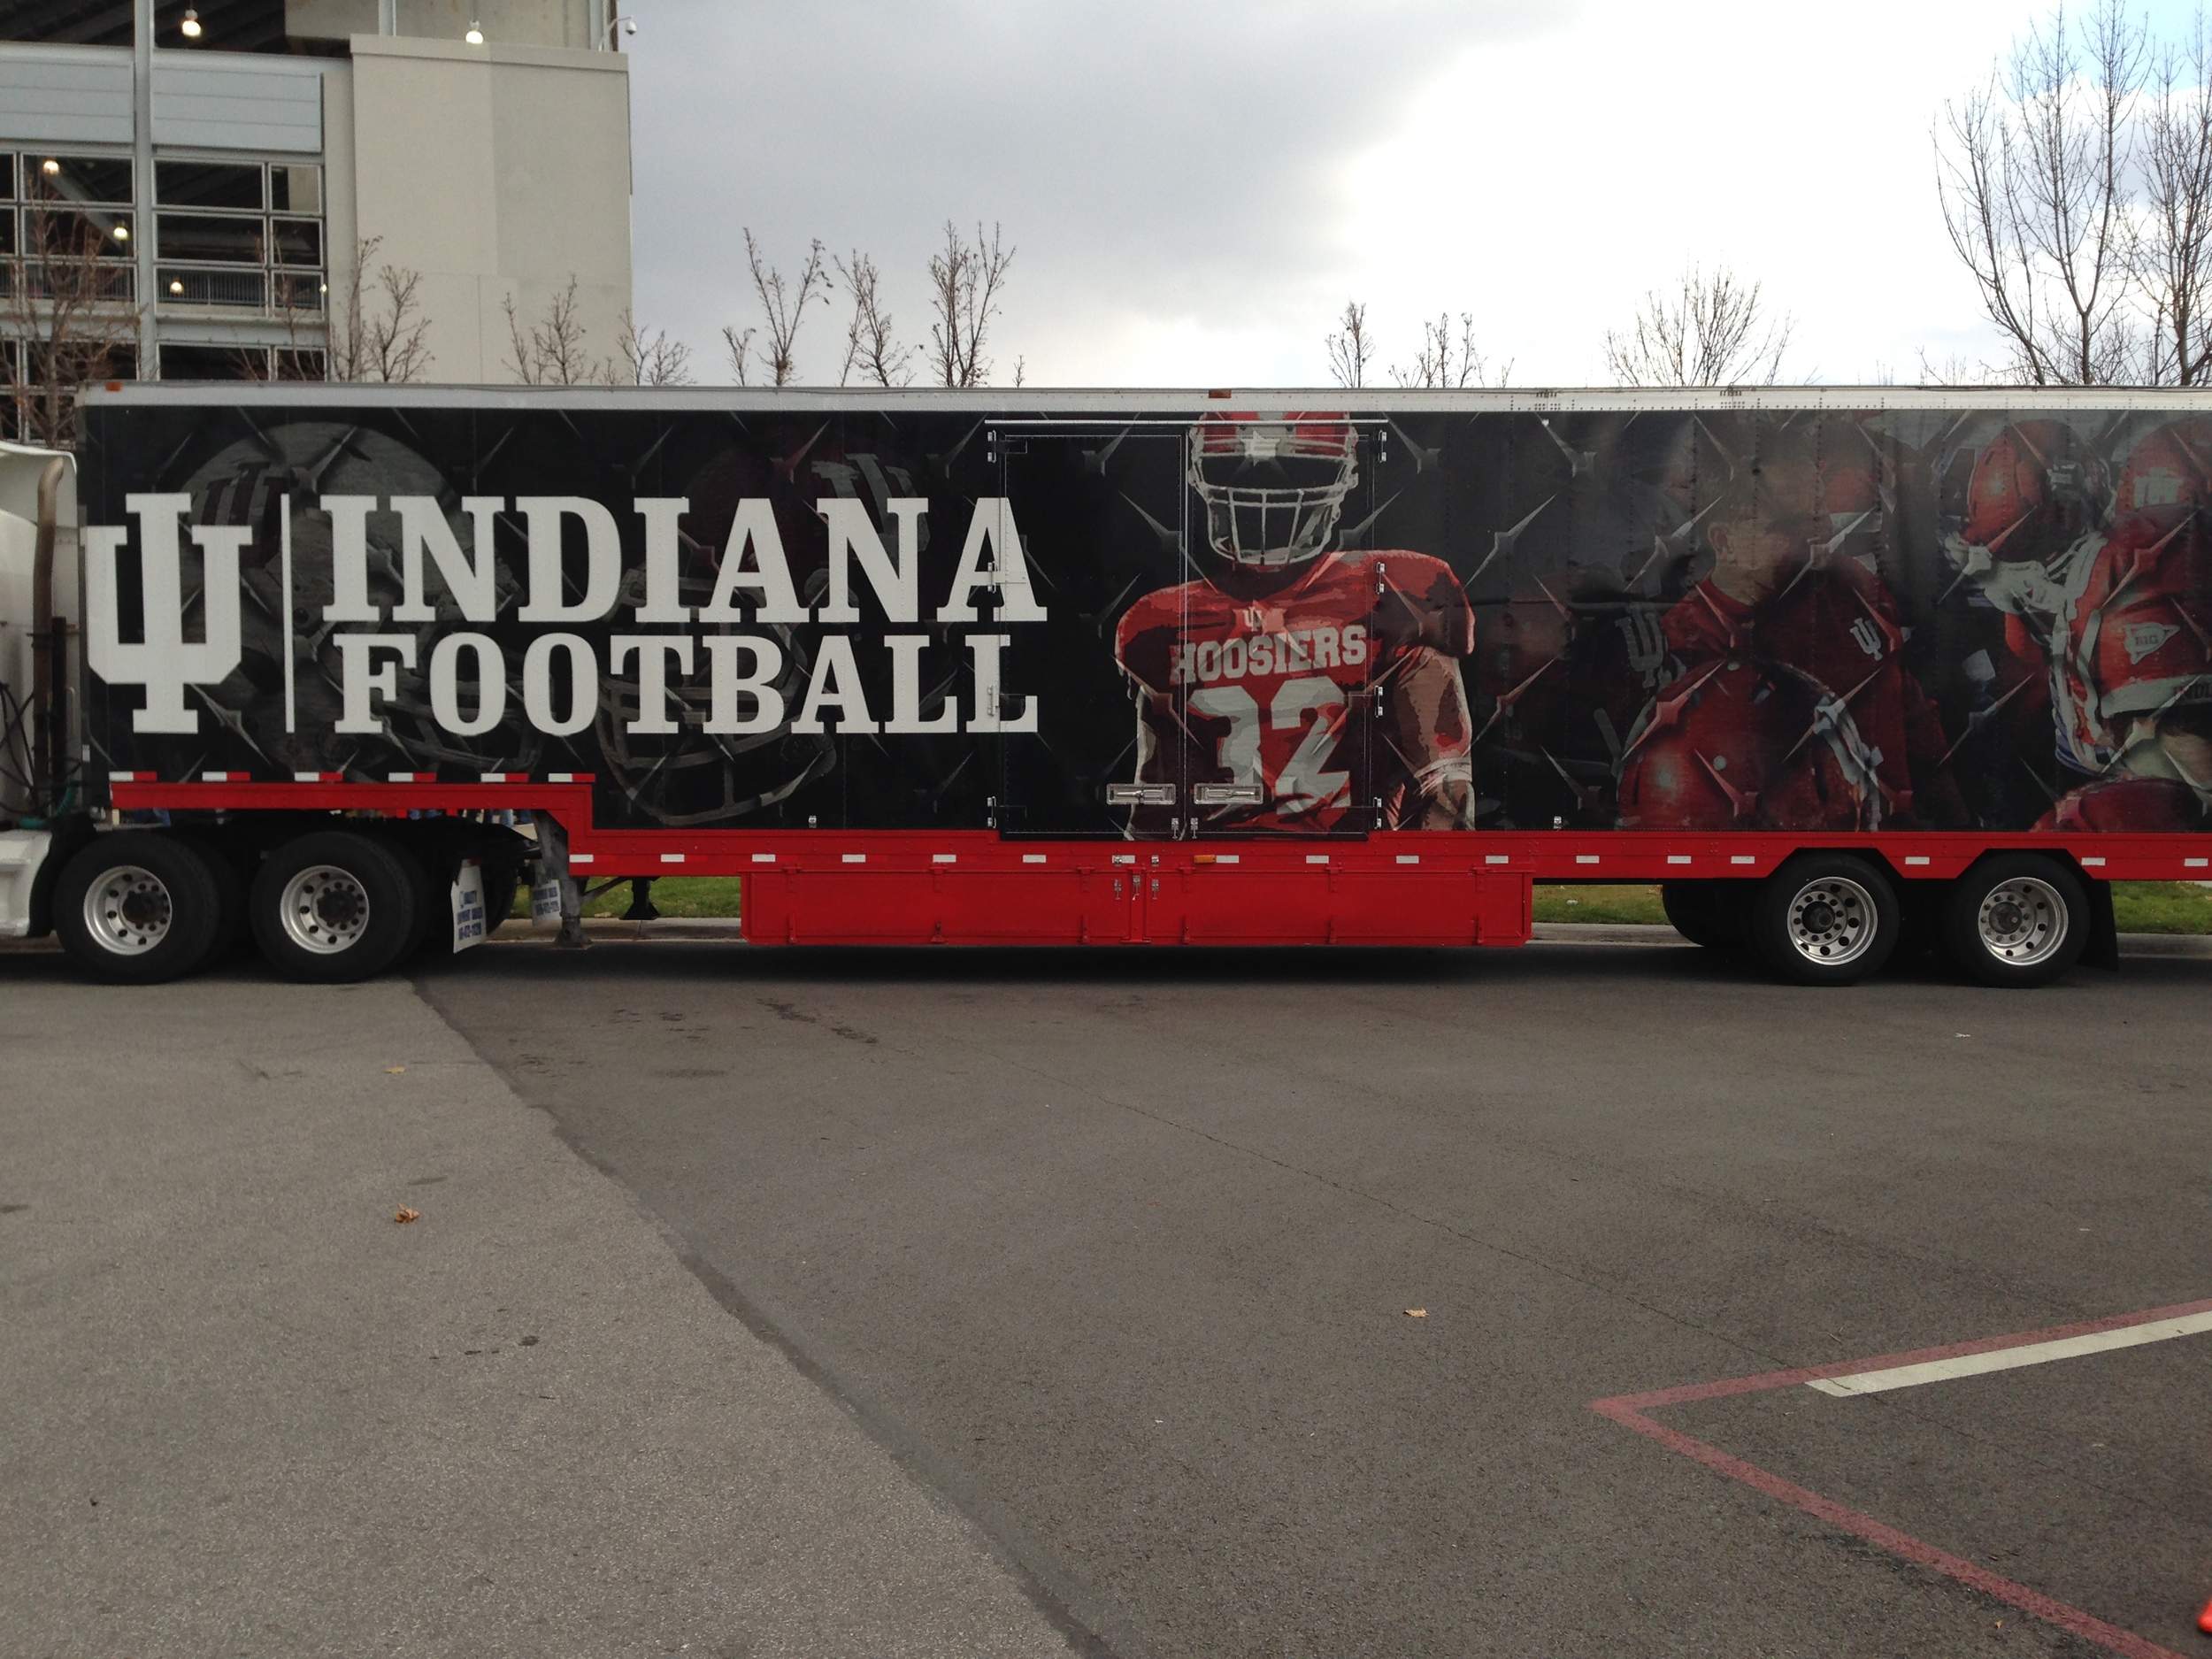 The Indiana Football Equipment truck